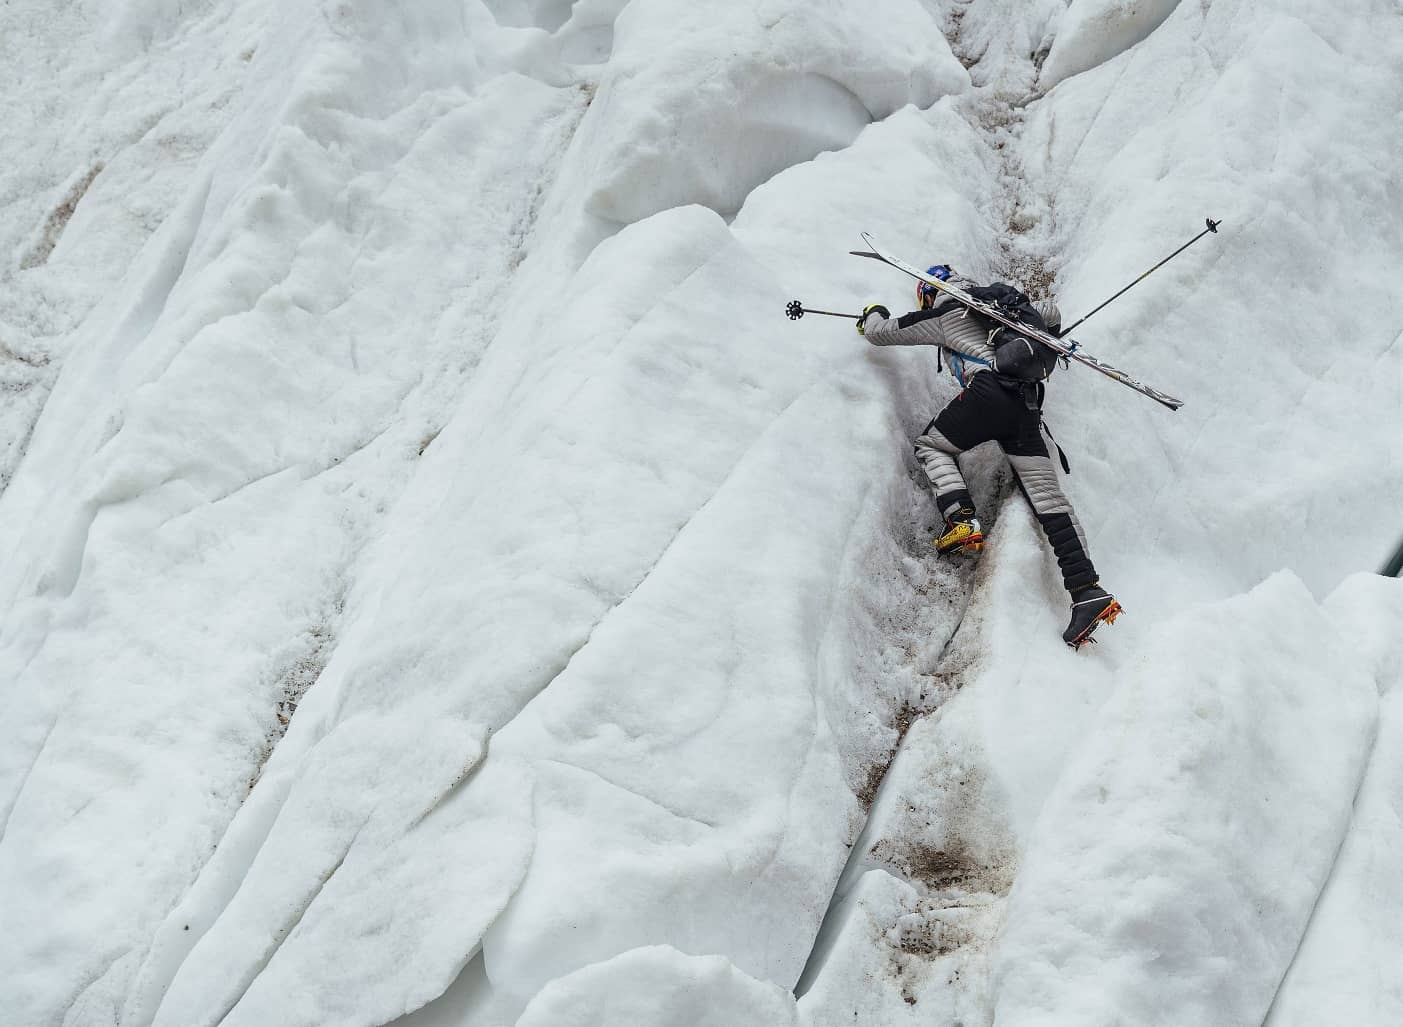 K2 The Impossible Descent